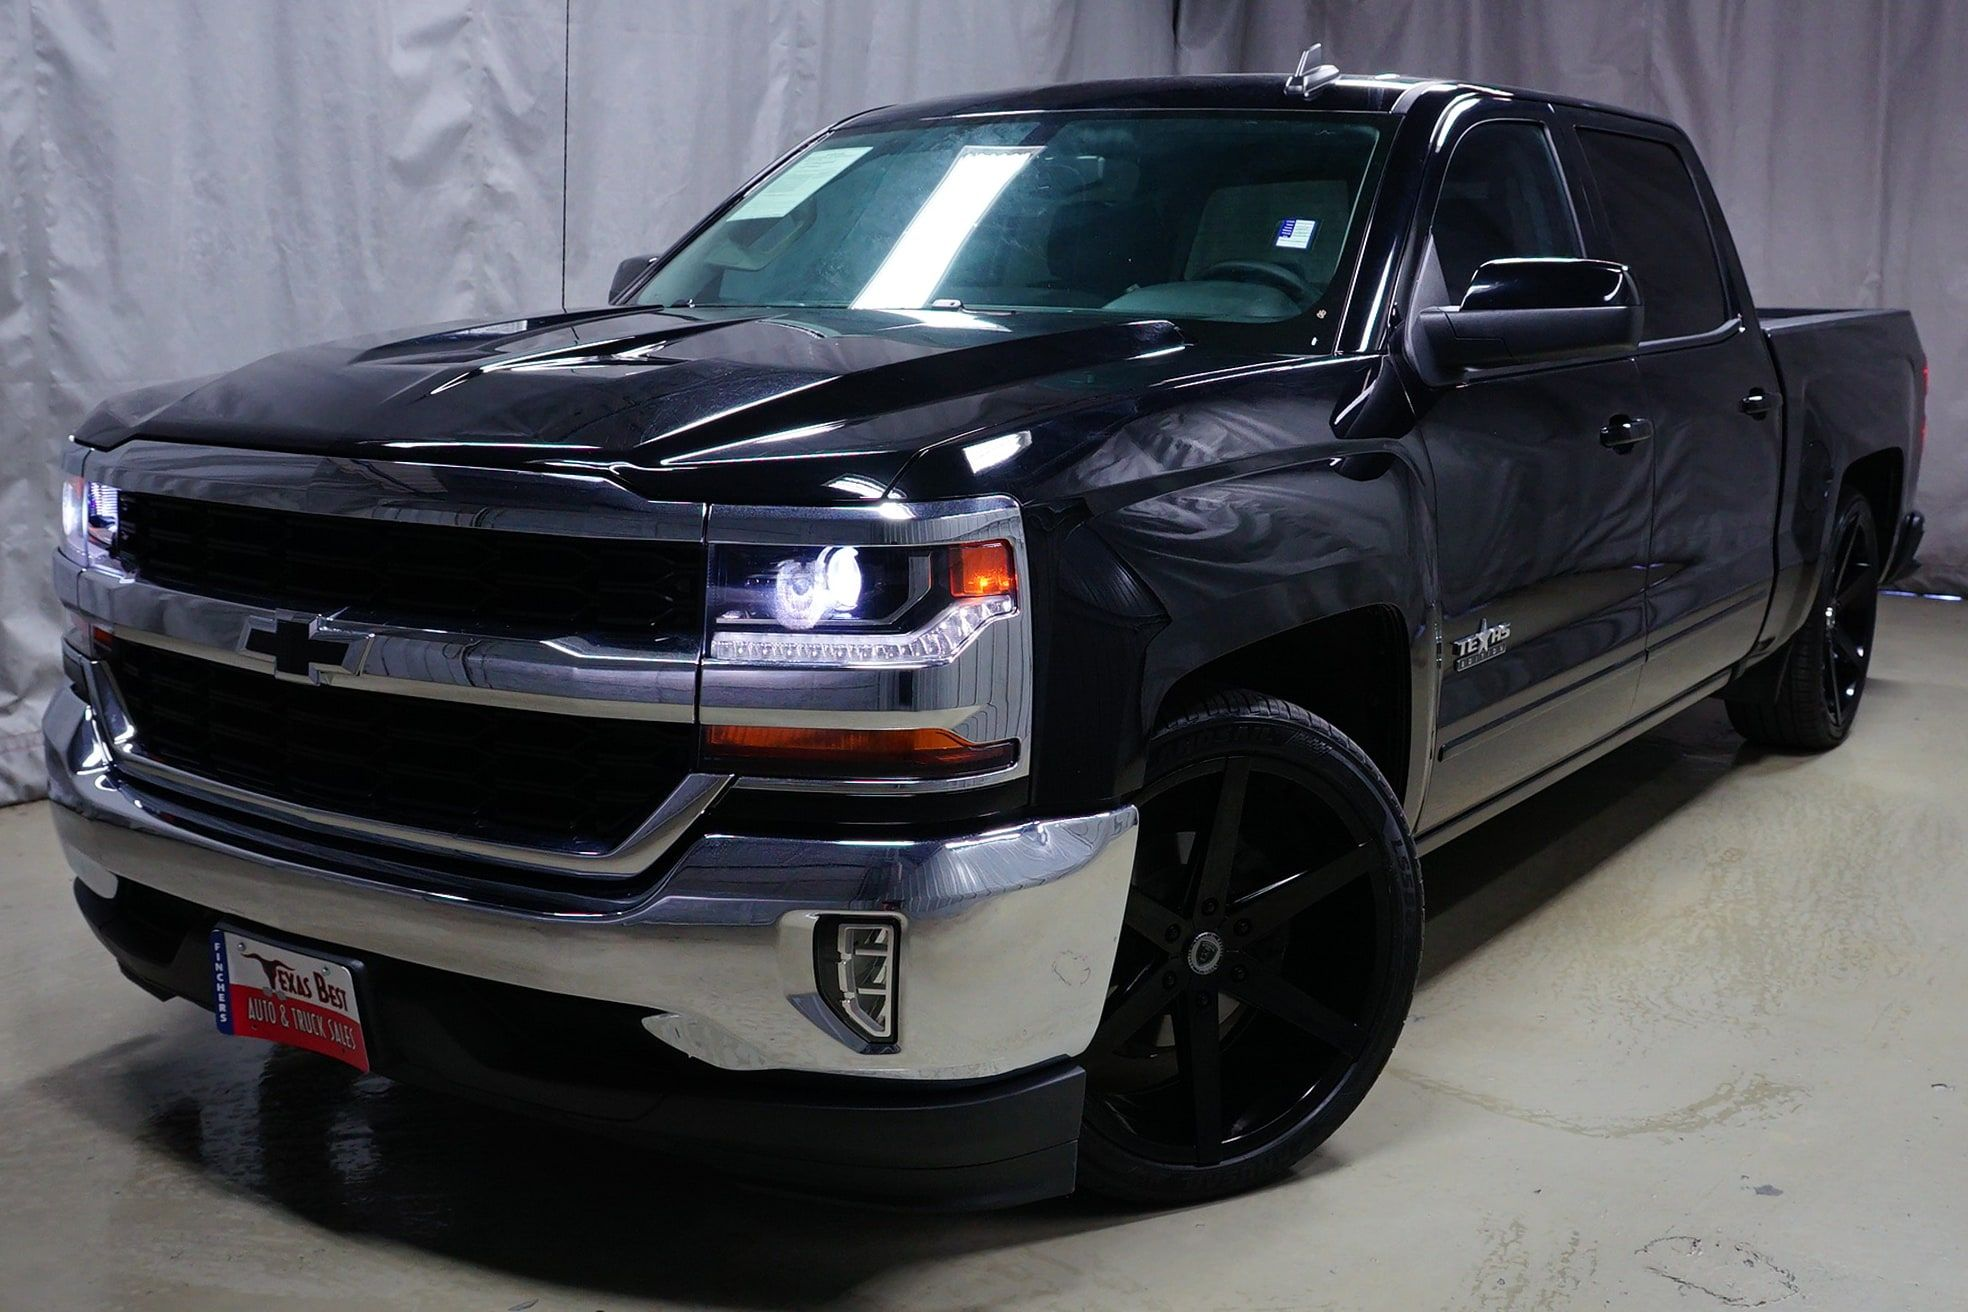 Custom Lowered Truck 2016 Chevrolet Silverado 1500 Lt For Sale At Fincher S Texas Best Located In Chevrolet Silverado 1500 Chevrolet Chevrolet Silverado